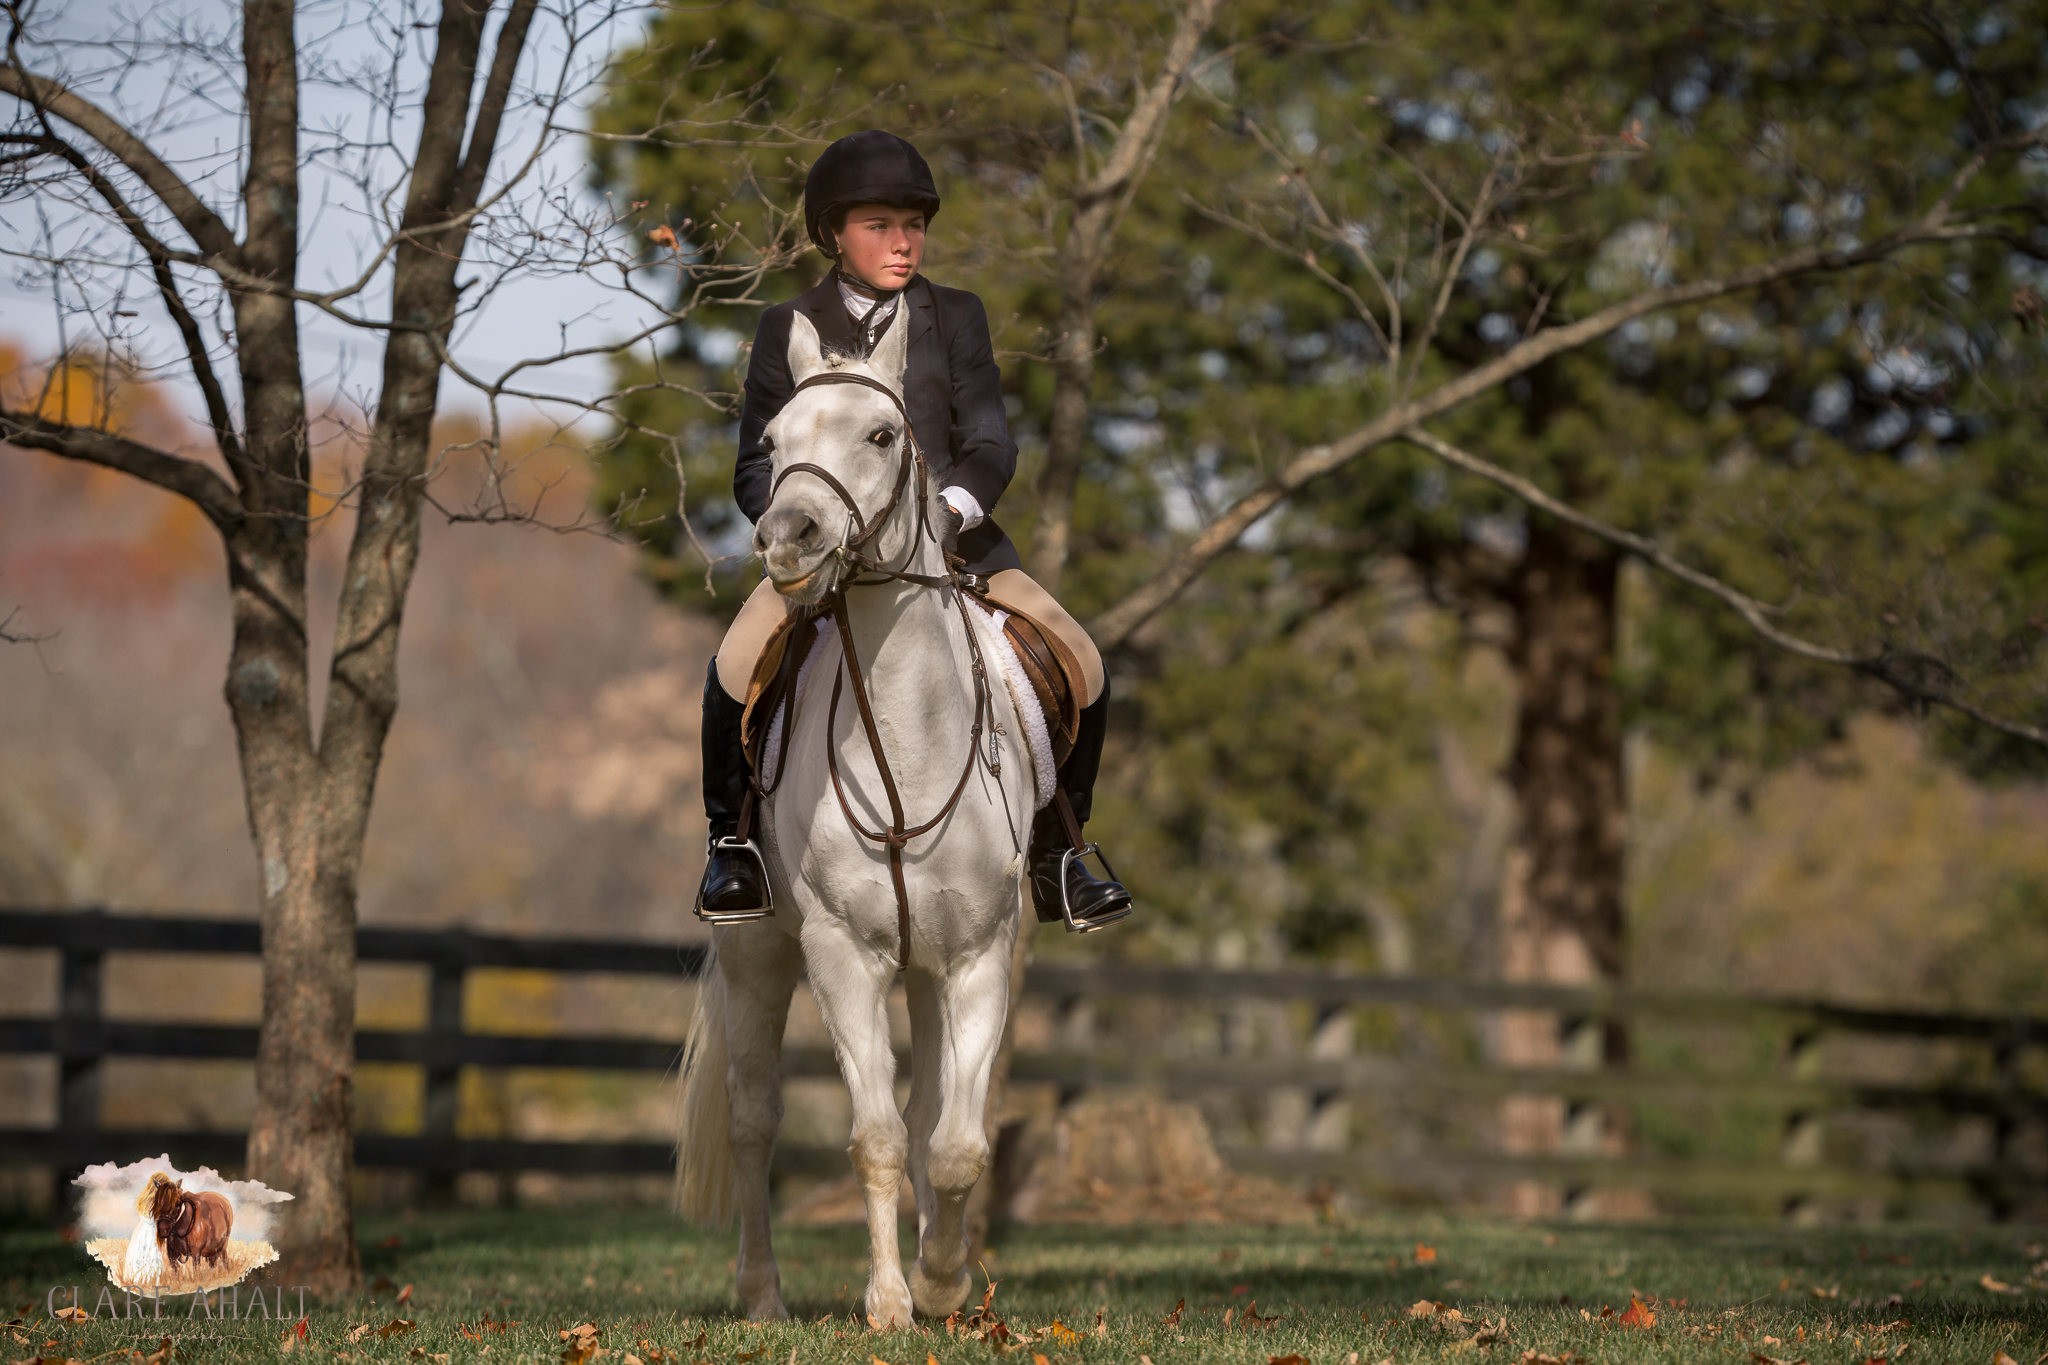 Best_Equestrian_Photographer_Maryland_equine_photographer_northern_virginia_equestrian_Photographer-35.jpg